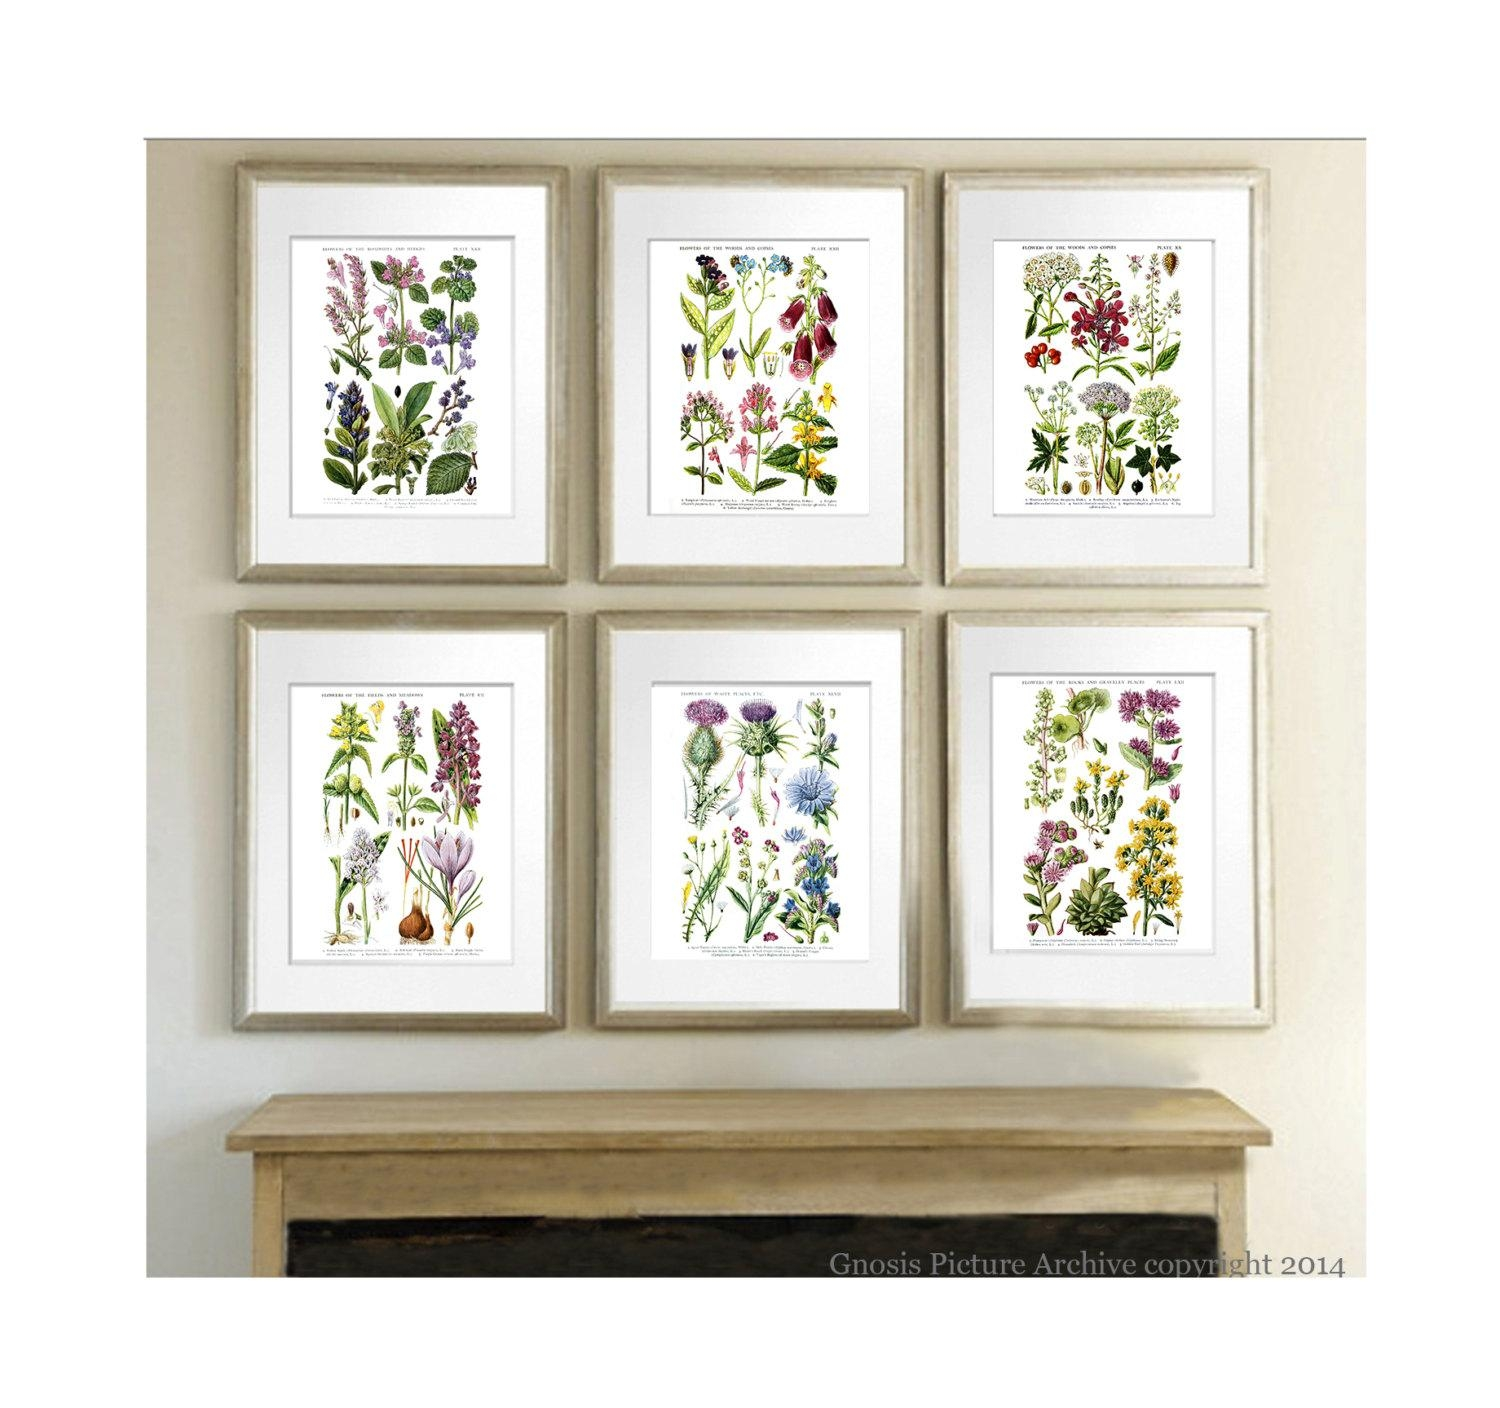 Anniversary Gift For Her Botanical Art Prints Wild Flowers Pertaining To Botanical Prints Etsy (Image 14 of 20)